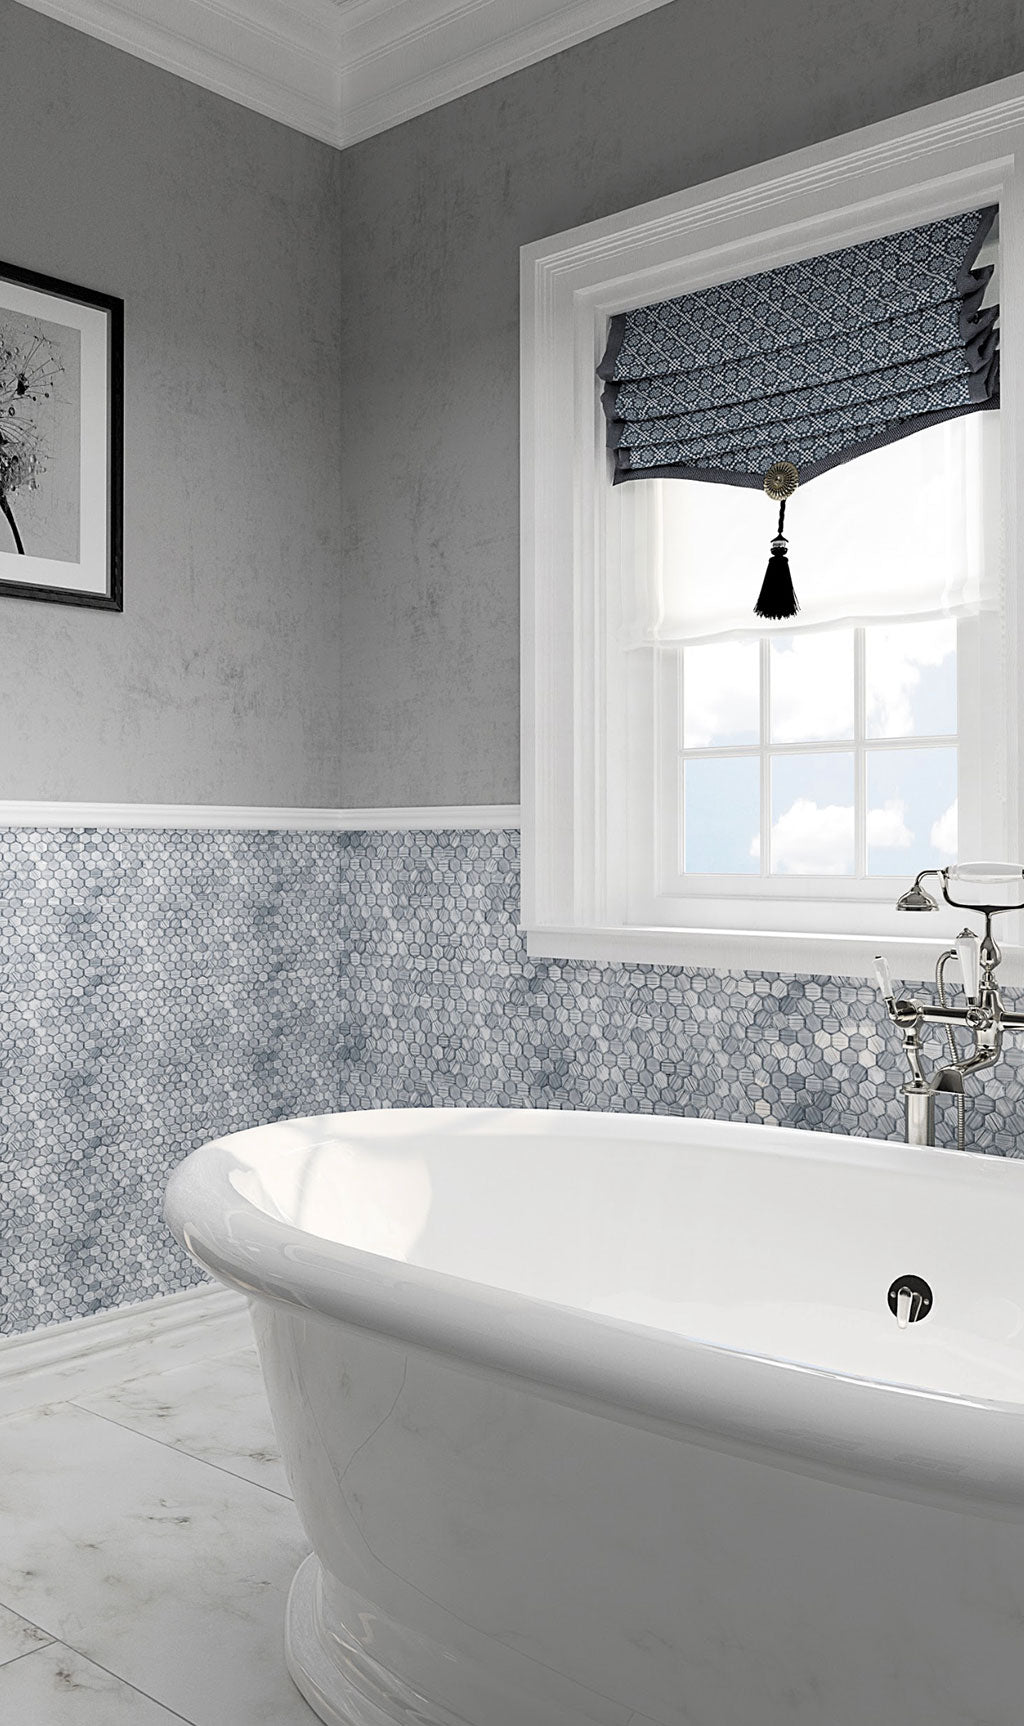 Fabrique Blue Grey Hexagon Glass Mosaic Tile for a Geometric Bathroom with Coastal Tub Surround